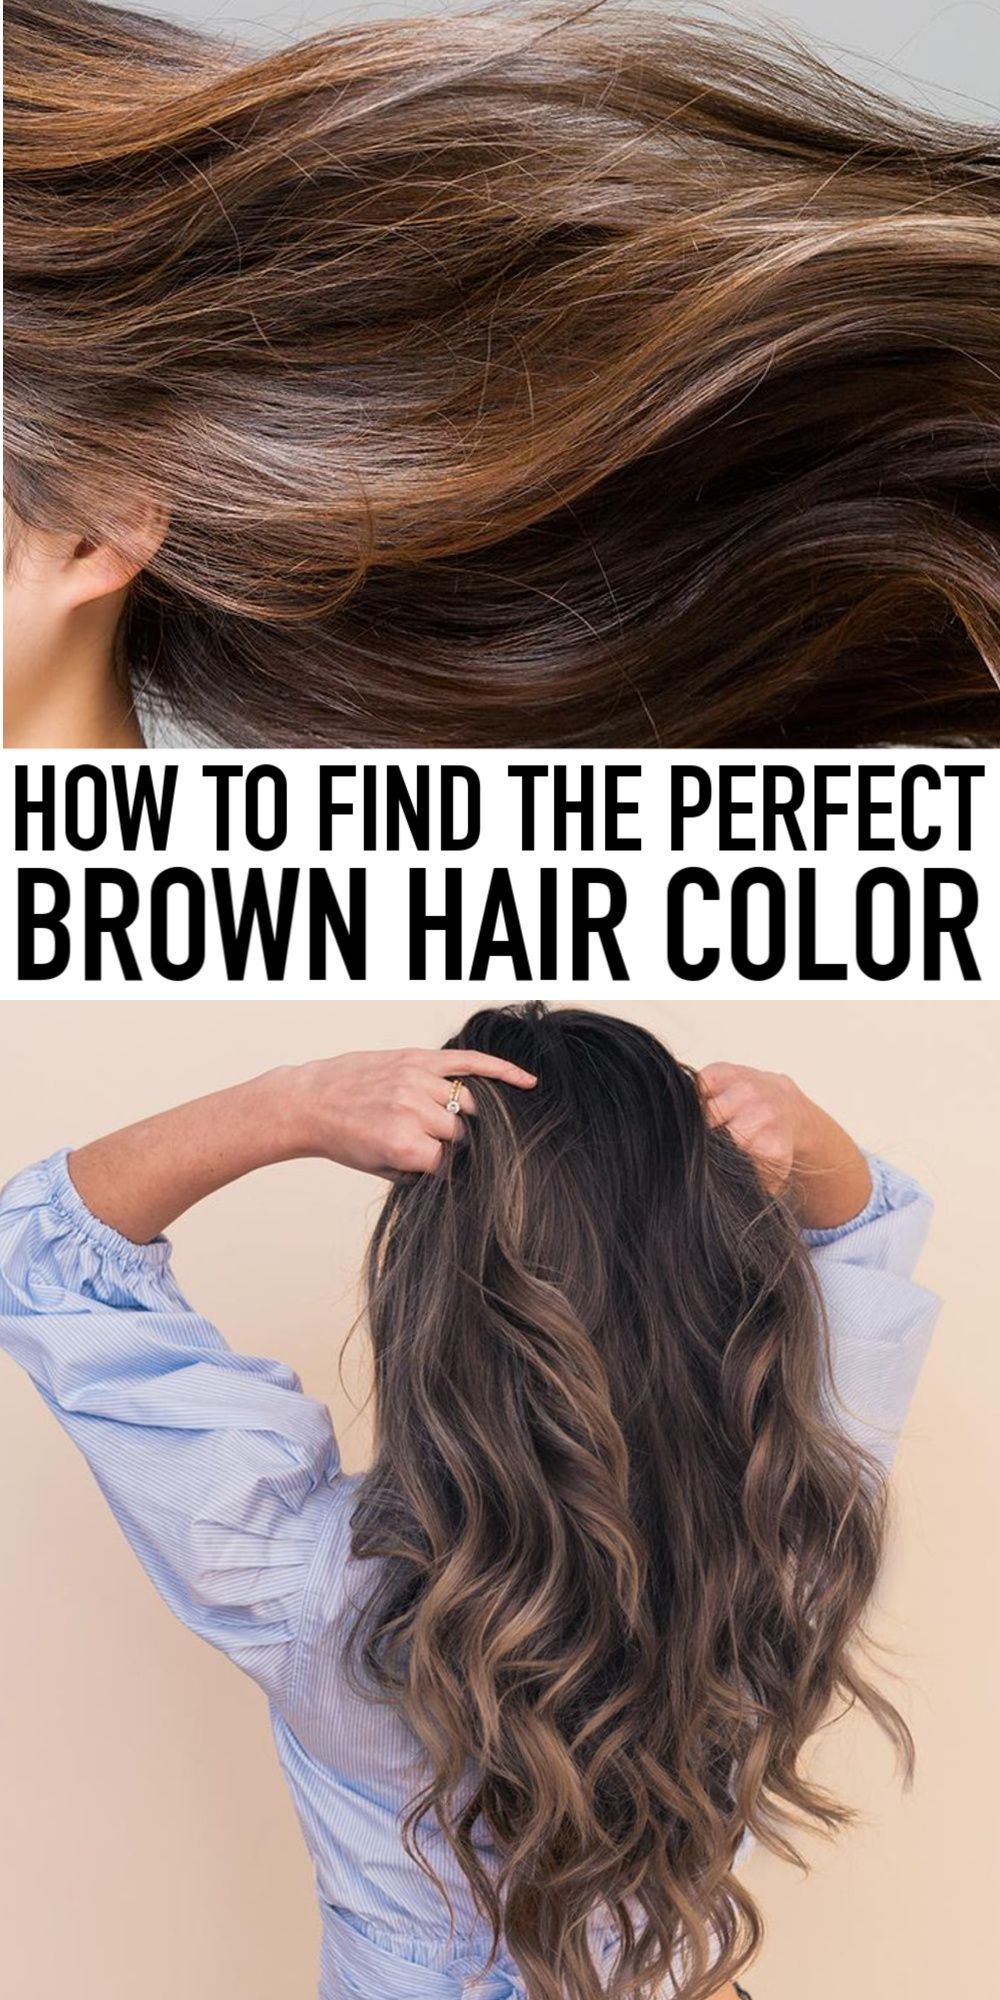 Best Hair Colors Brown In 2020 Hair Color Reviews Hair Color At Home Hair Color